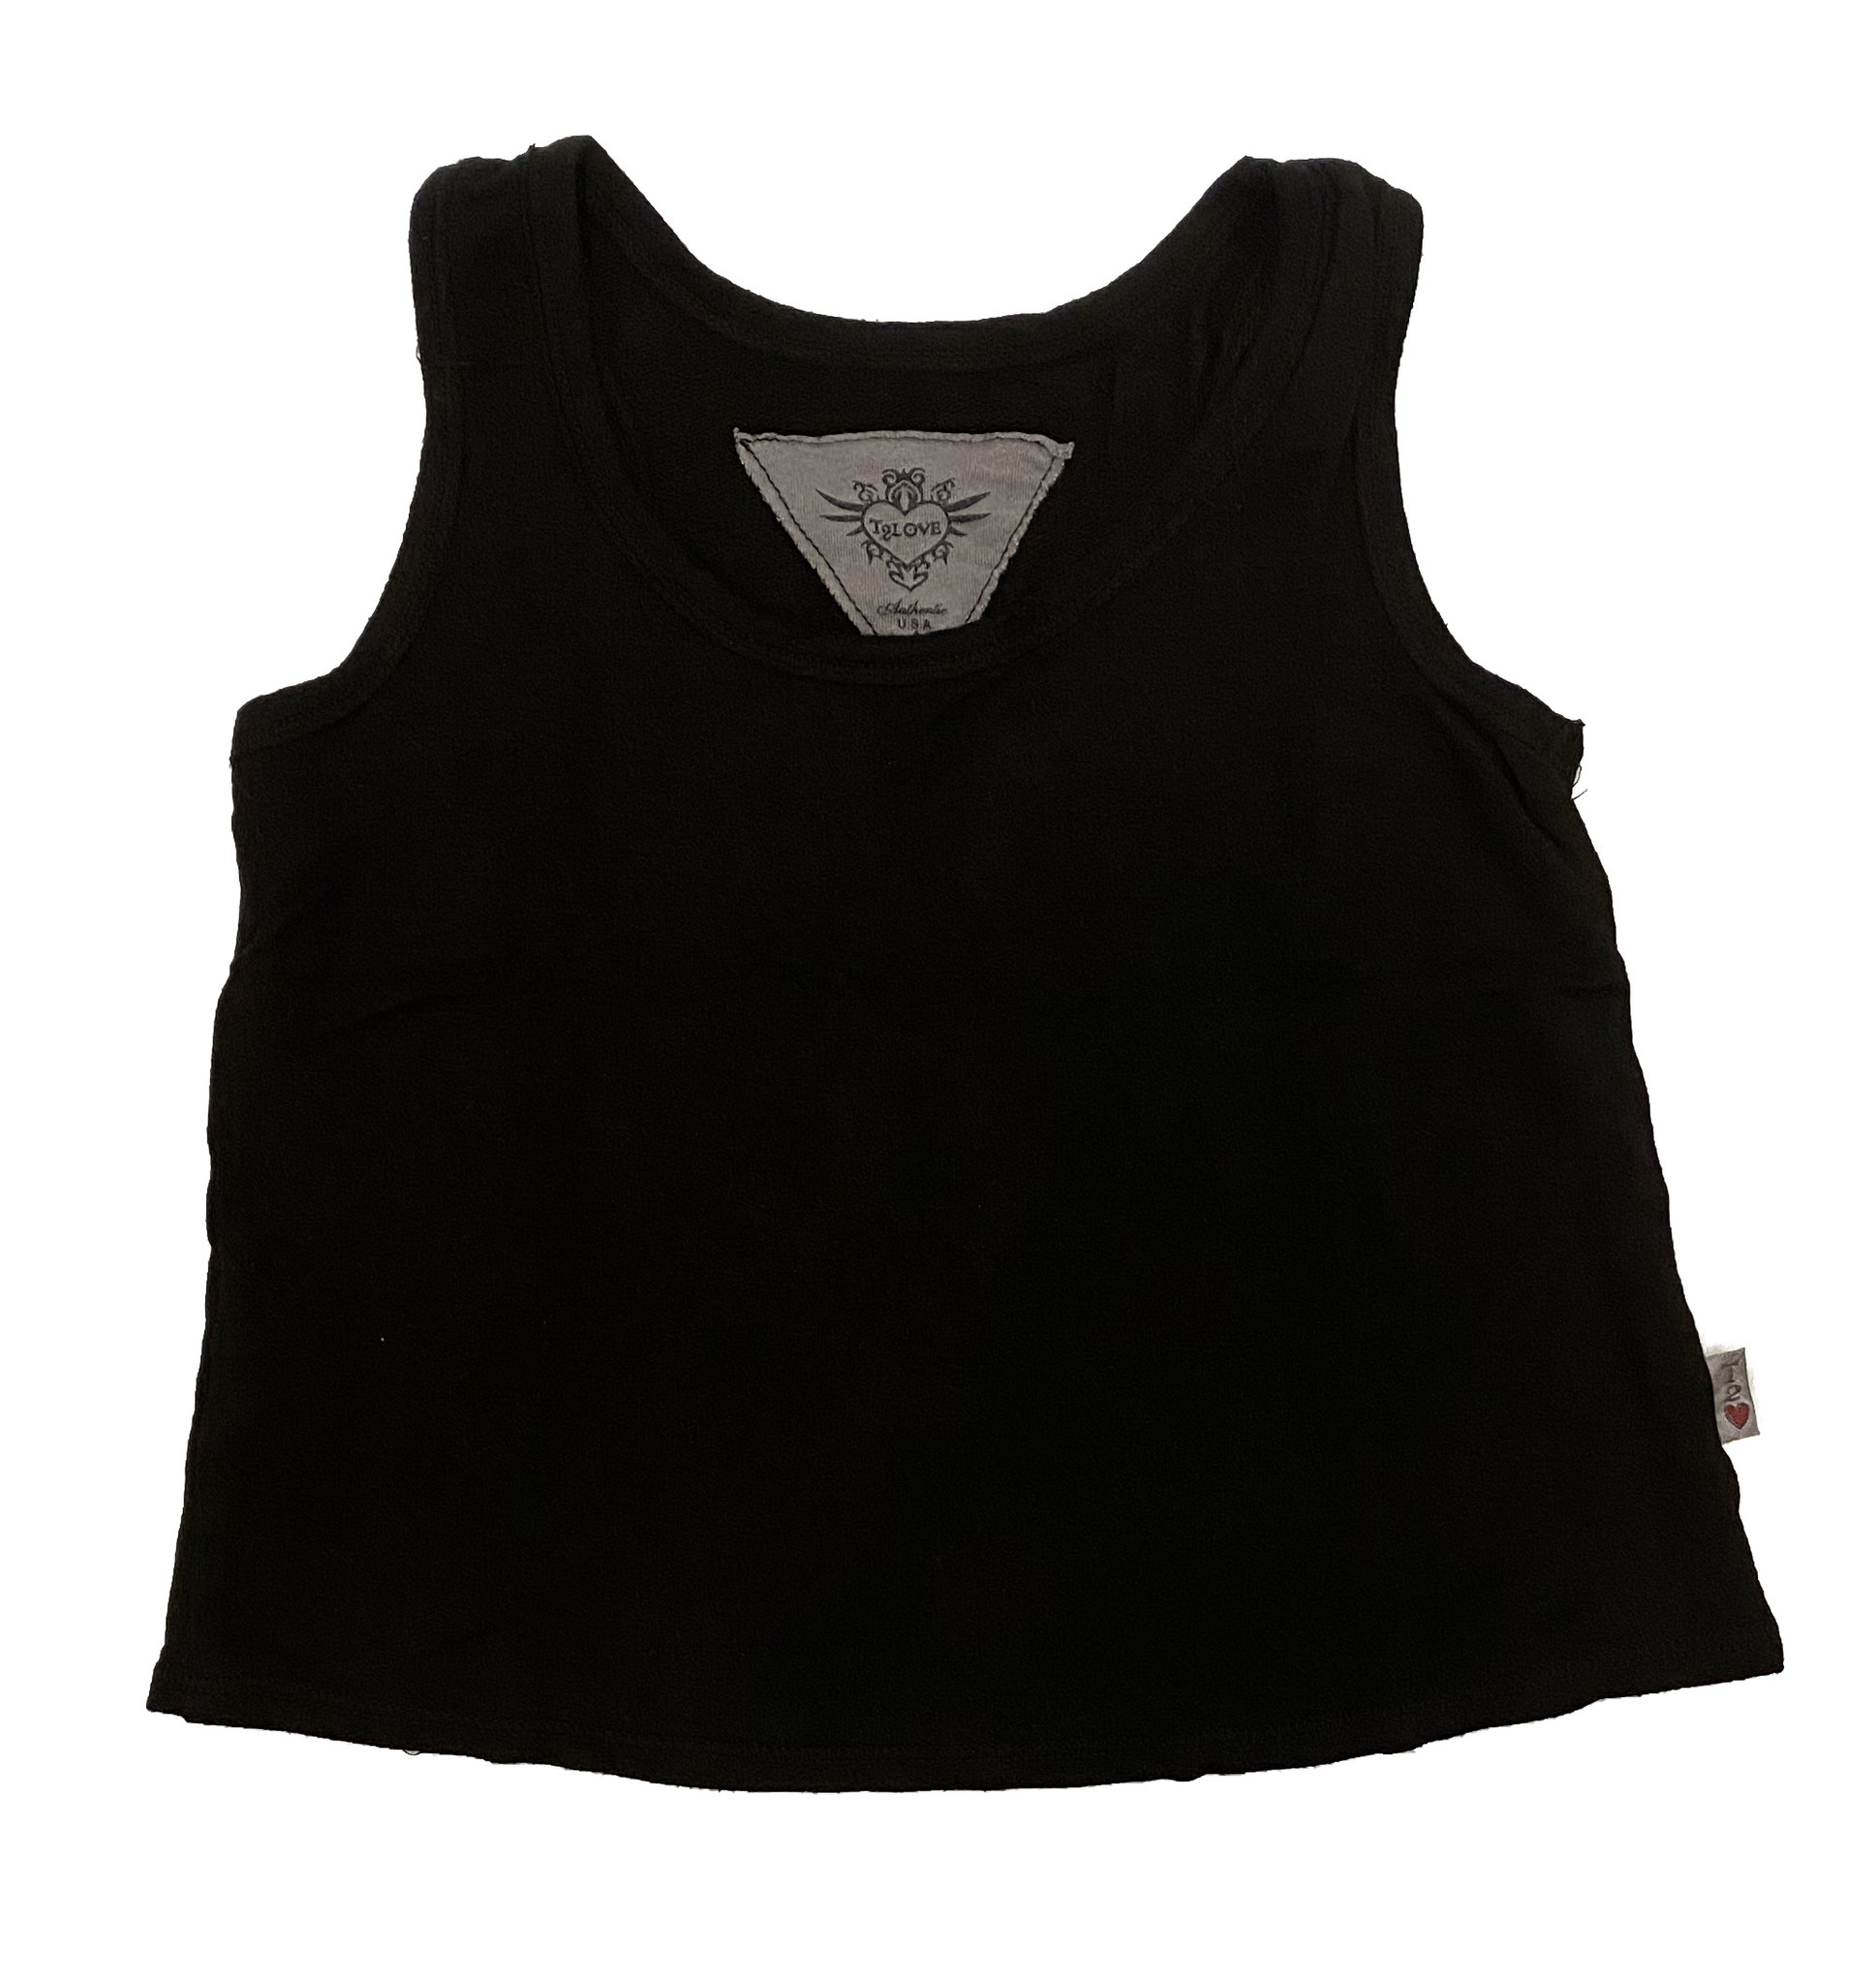 T2Love Black Crop Tank Top